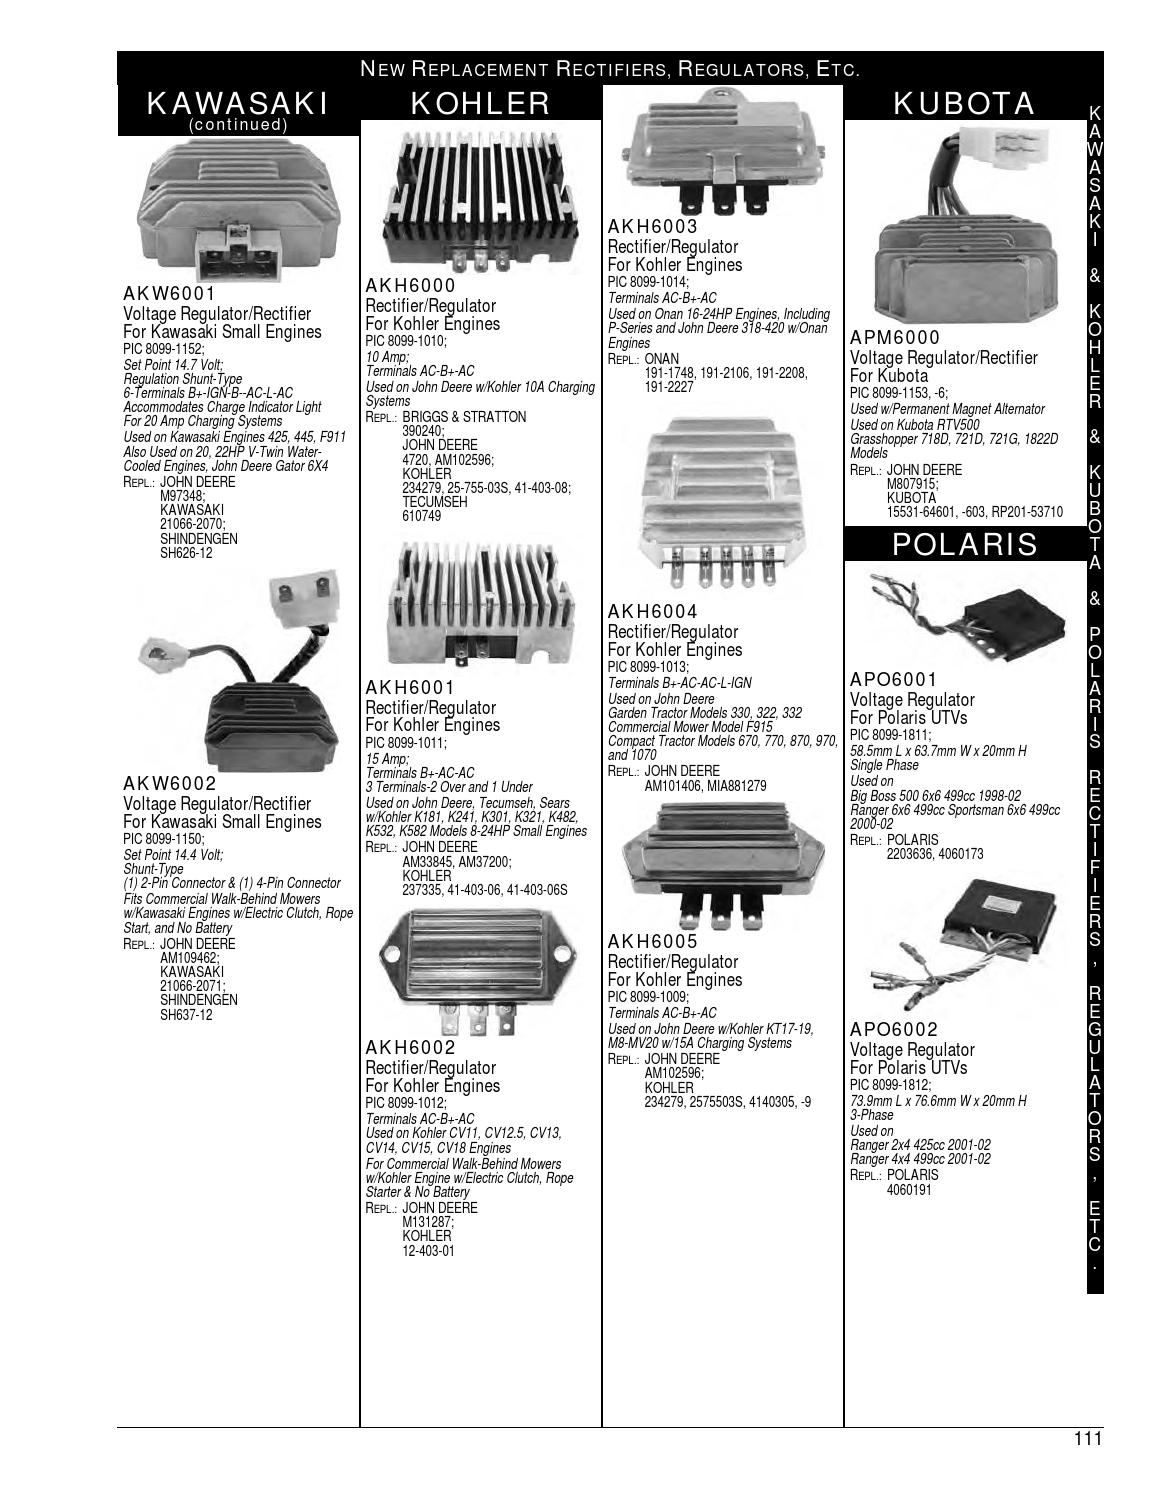 Arrowhead Electrical Products Outdoor Power Equipment